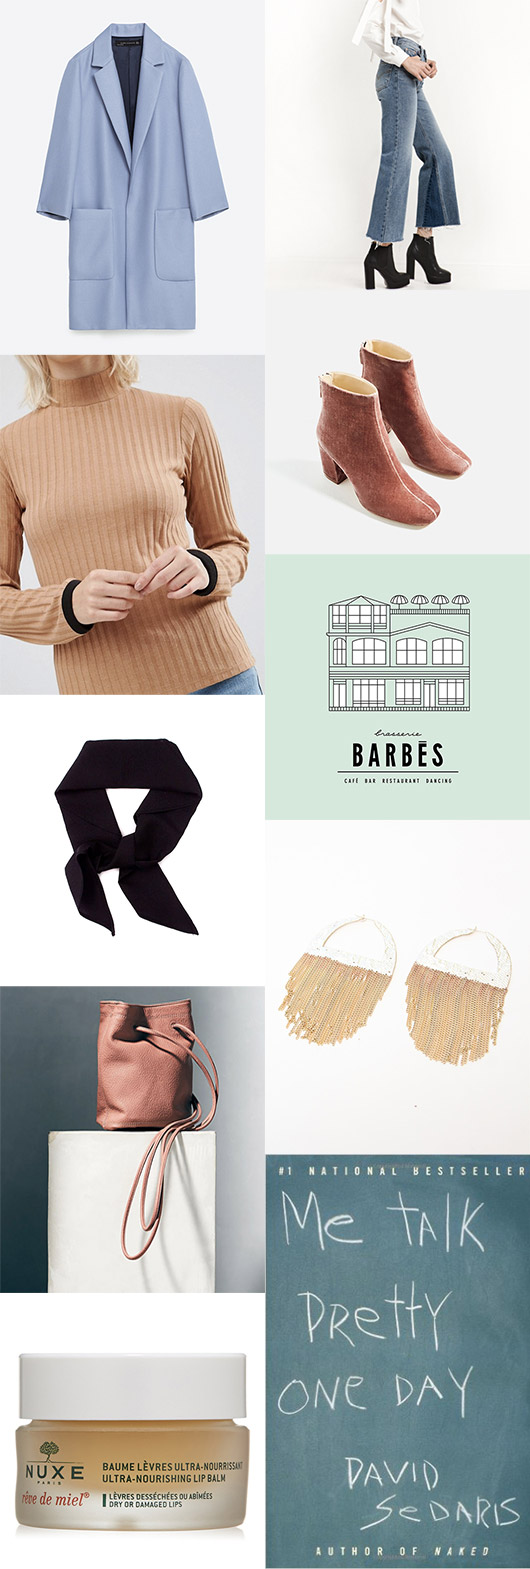 wear this there: brasserie barbès. / sfgirlbybay